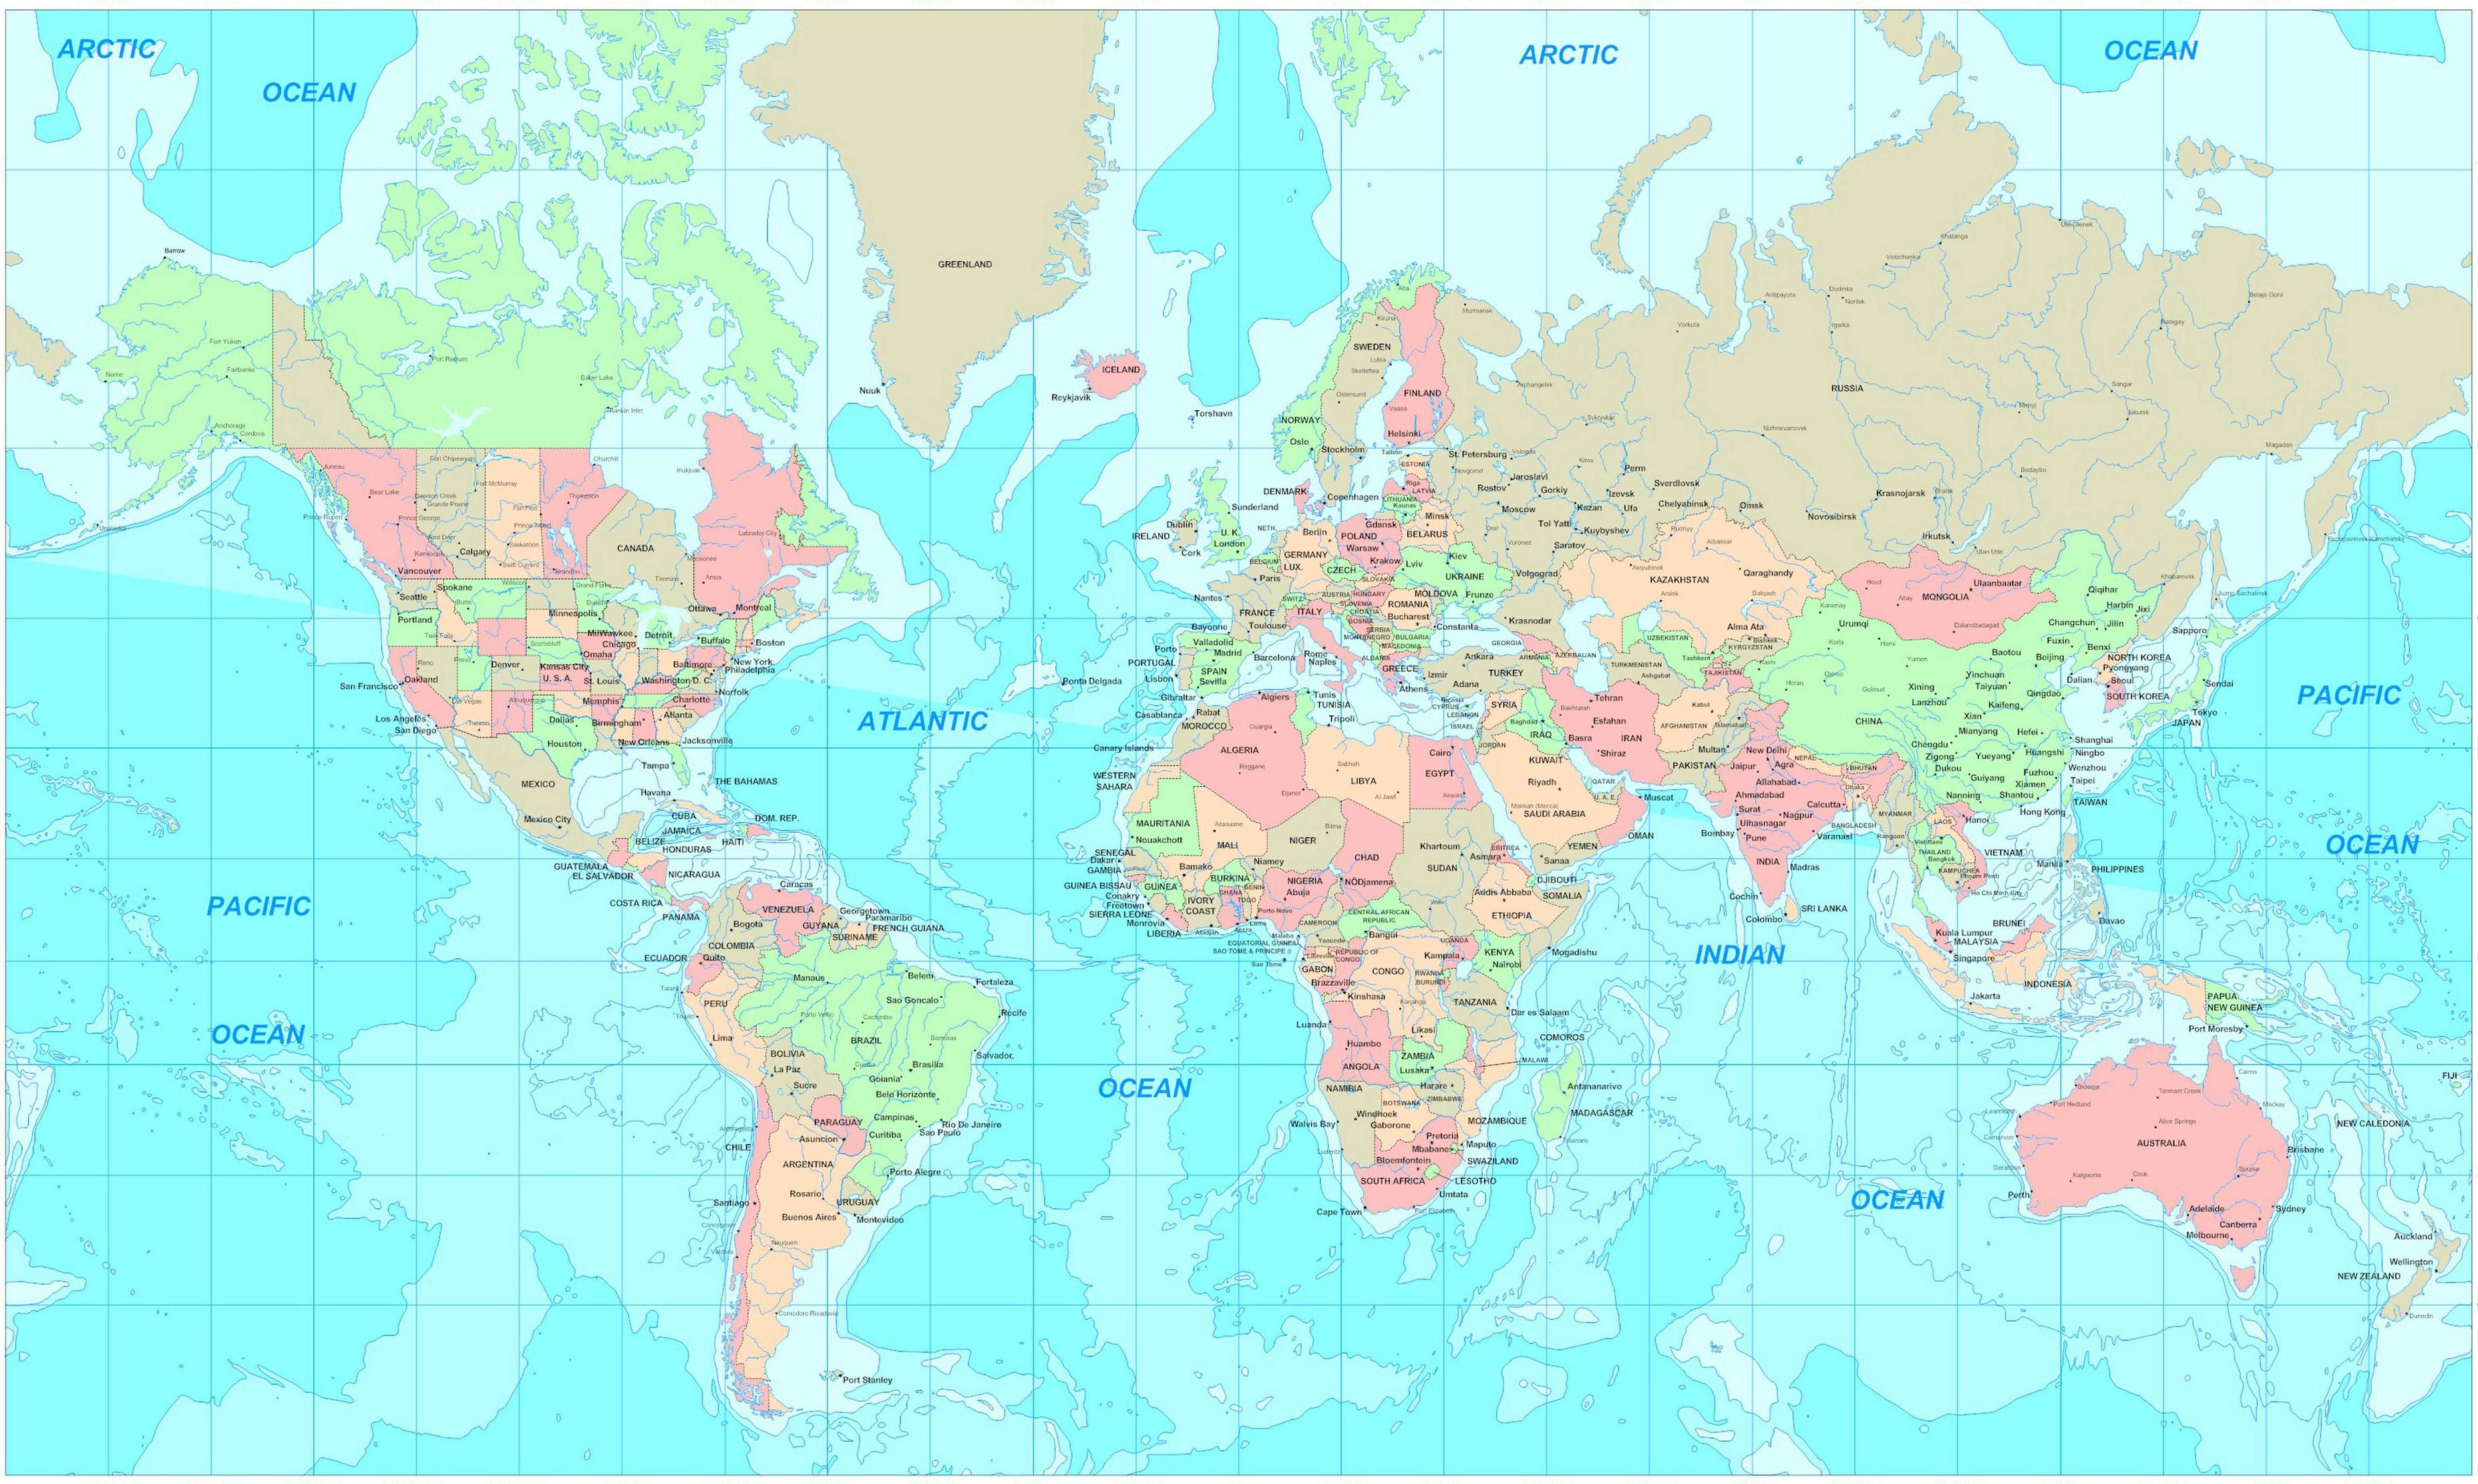 74+] World Map Wallpaper High Resolution on WallpaperSafari on wallpaper desktop world map, home world map, high quality world map, word world map, html world map, the best vector world map,